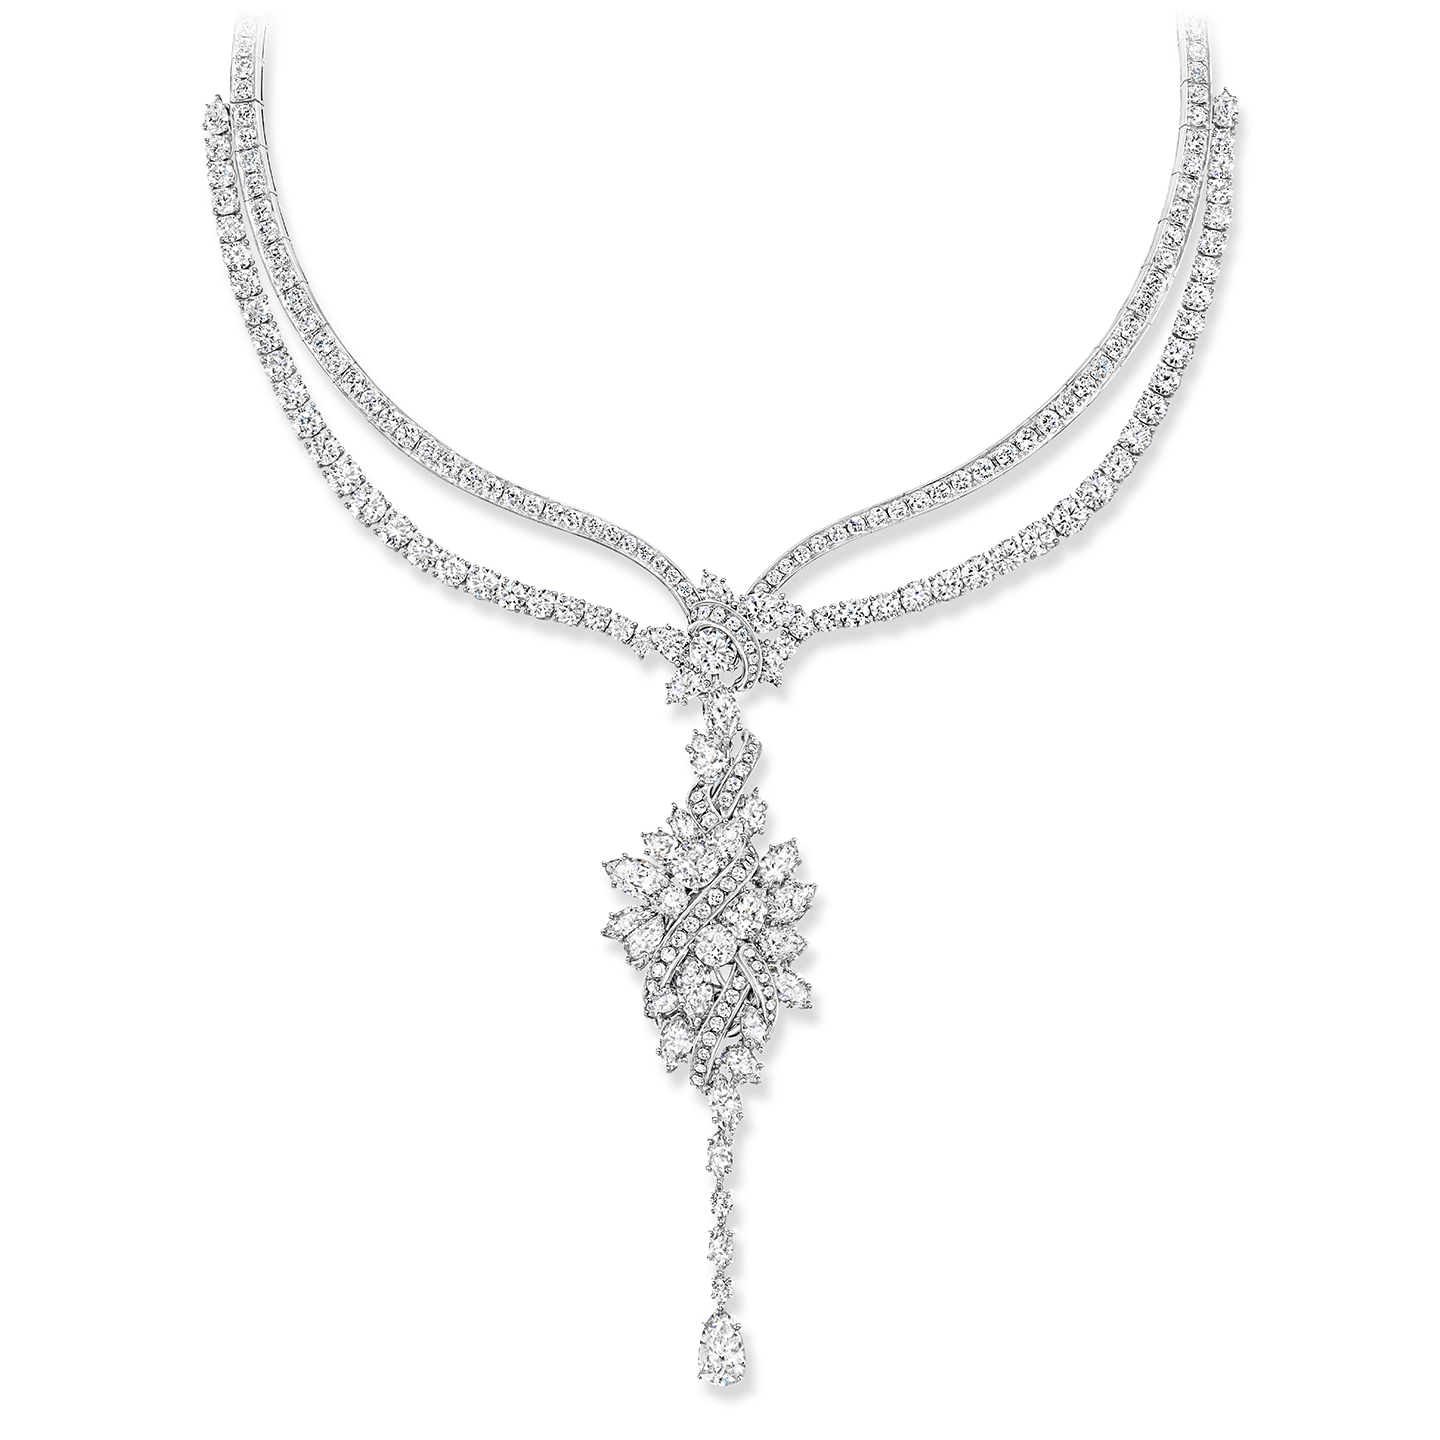 A necklace with 530 marquise, pear-shaped and round brilliant diamonds weighing a total of approximately 81.85 carats, set in platinum.  The necklace's featured cluster pendant is a locket. Other elements of the necklace may be worn in seven different configurations.